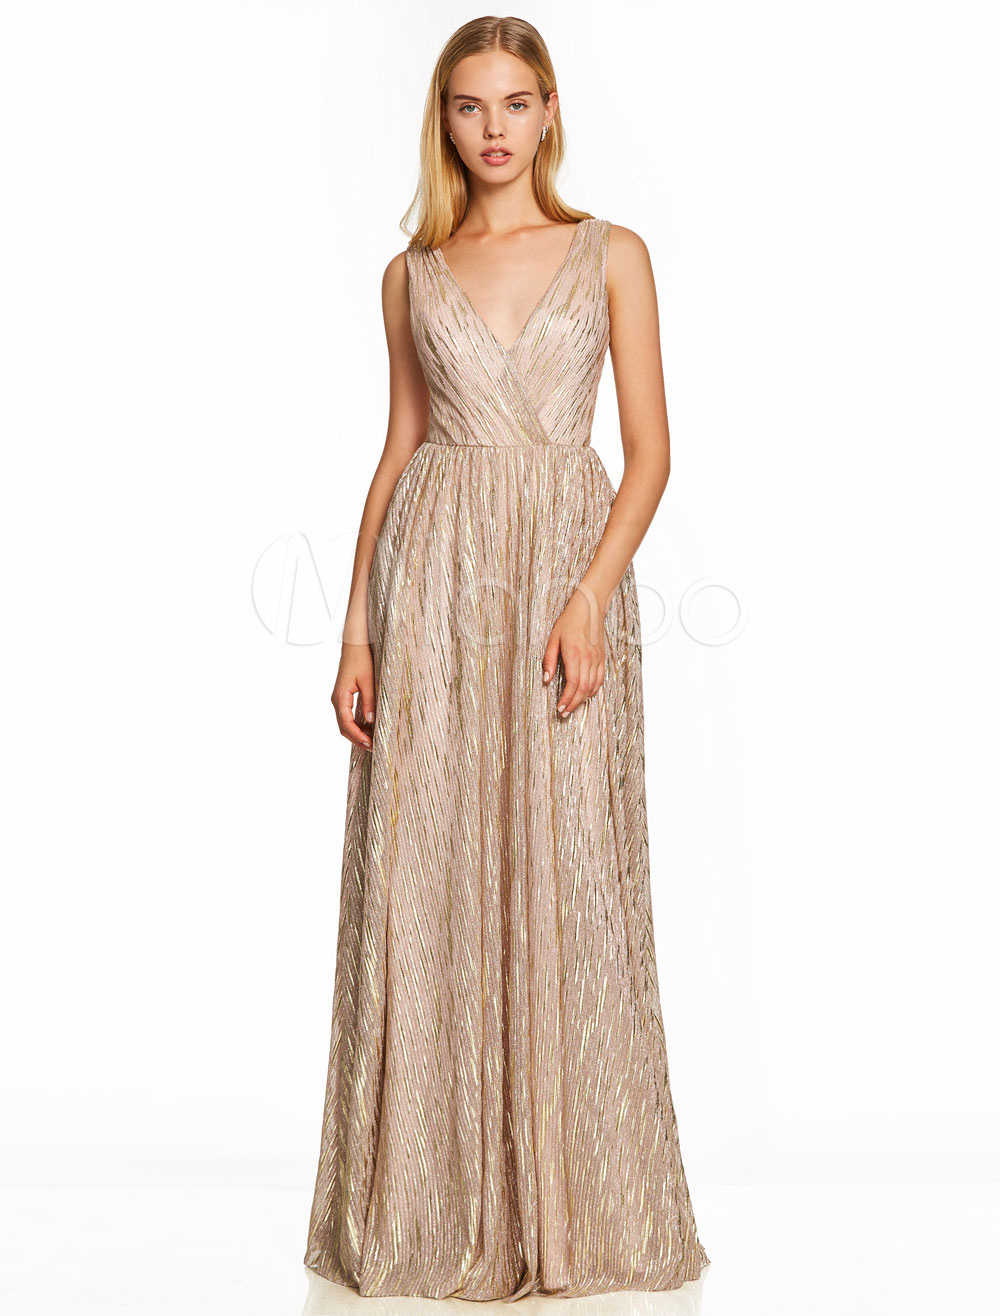 Champagne Prom Dresses Long Lace V Neck Sleeveless Backless Floor Length Special Occasion Dress (Wedding Cheap Party Dress) photo